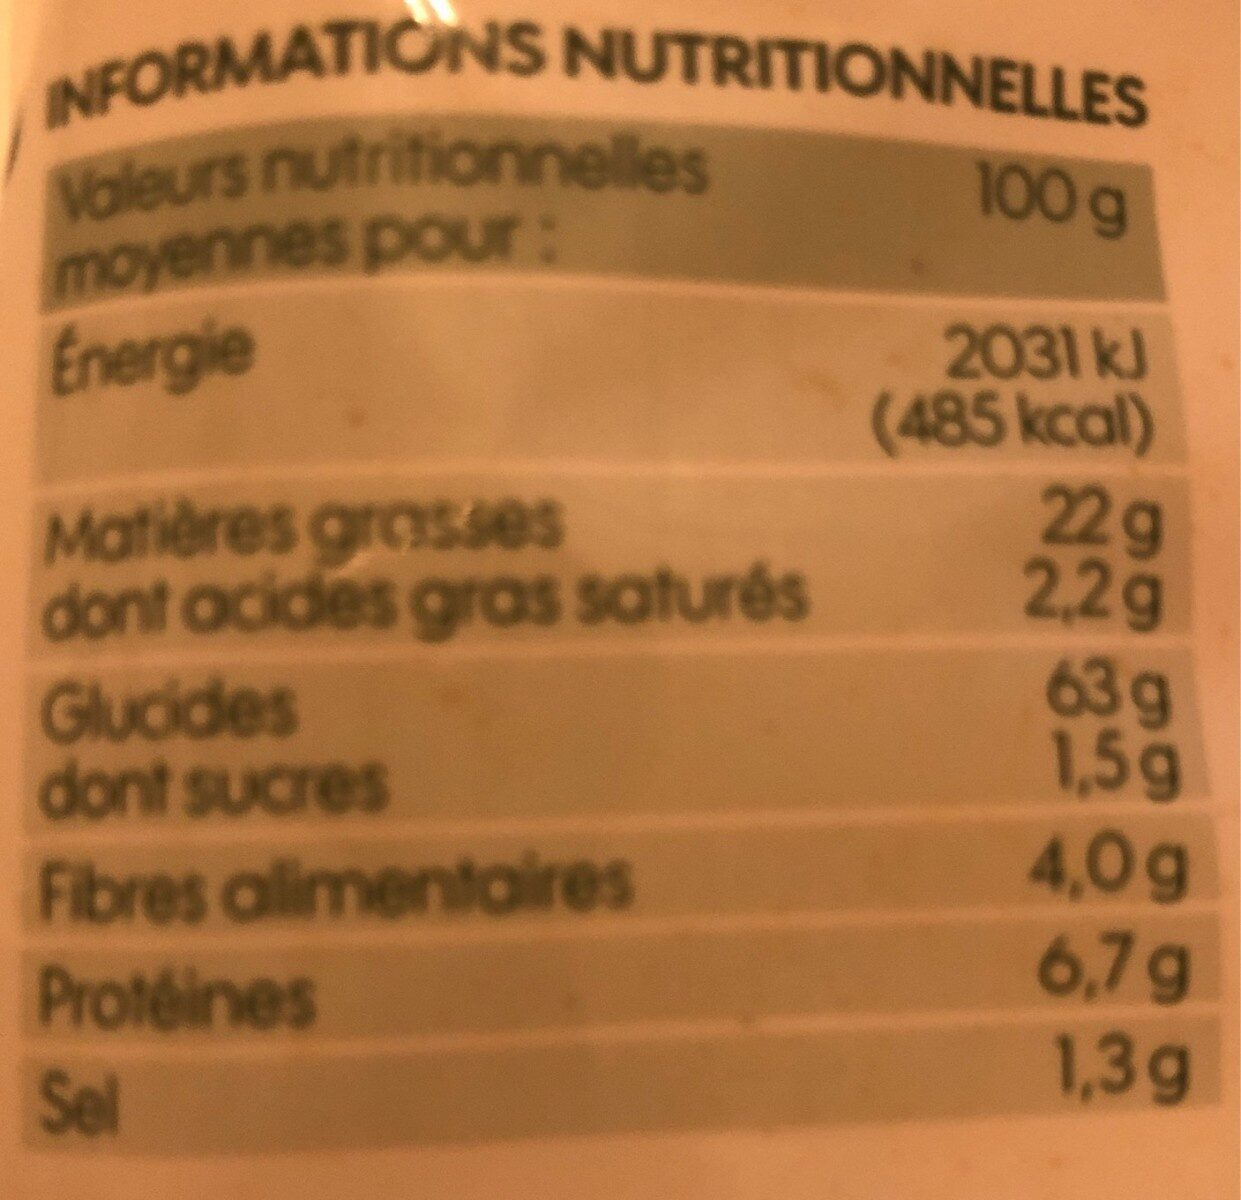 Tortillas chips chili - Informations nutritionnelles - fr